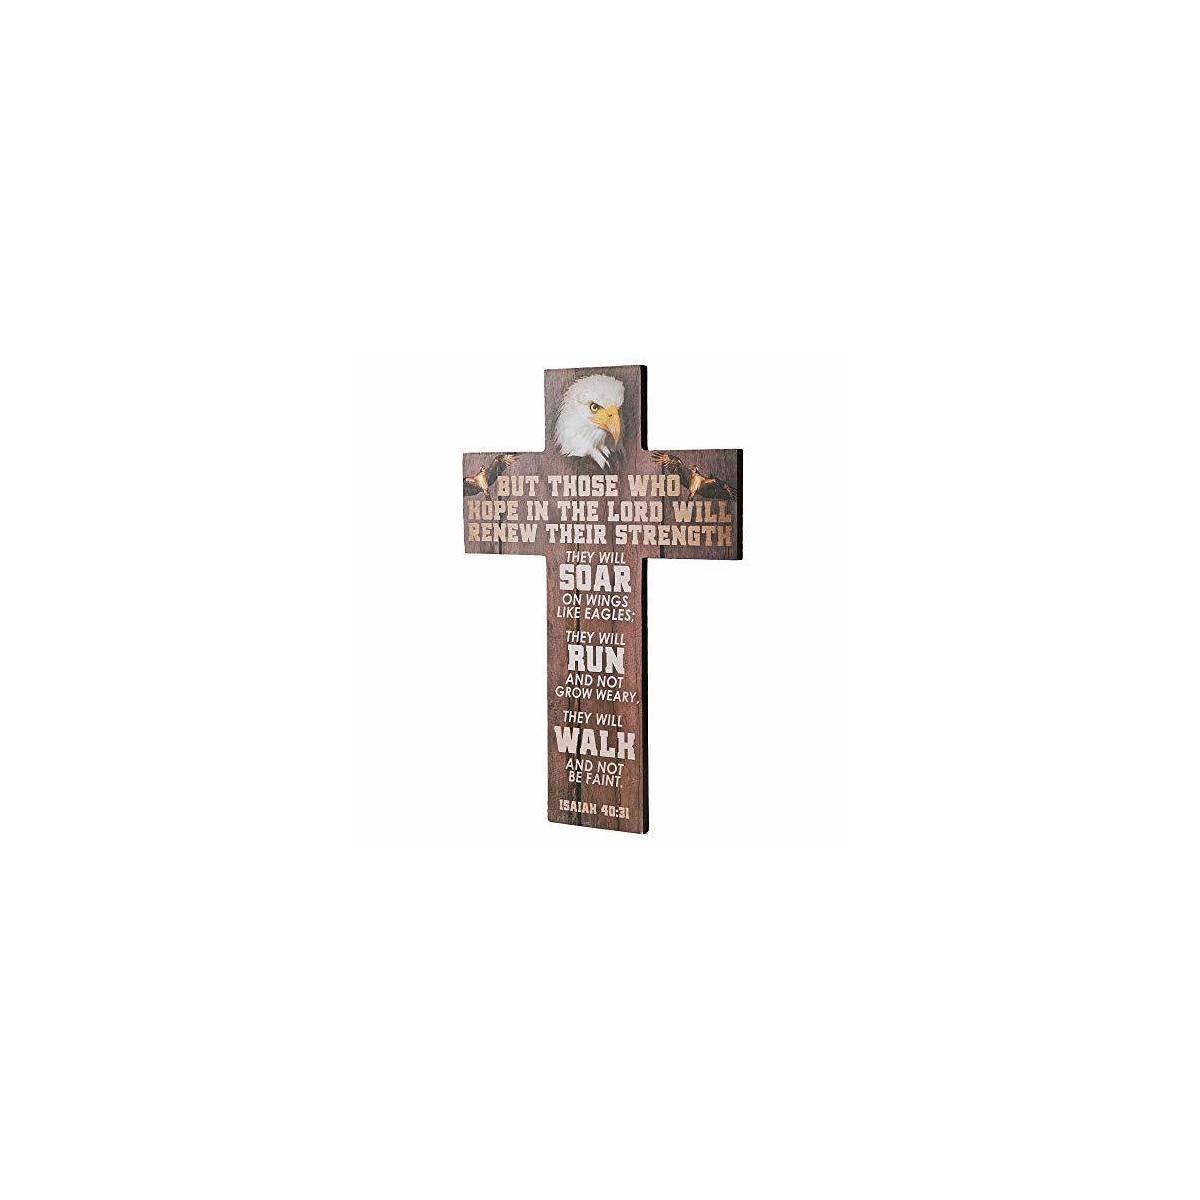 Evaluation result 8.82 of 10 Roll over image to zoom in        True Vine Creations, Christian Wall Decor, 13.75 inches x 9.75 inches, Wooden Cross Wall Art Décor, Isaiah 40:31 Bible Verse.